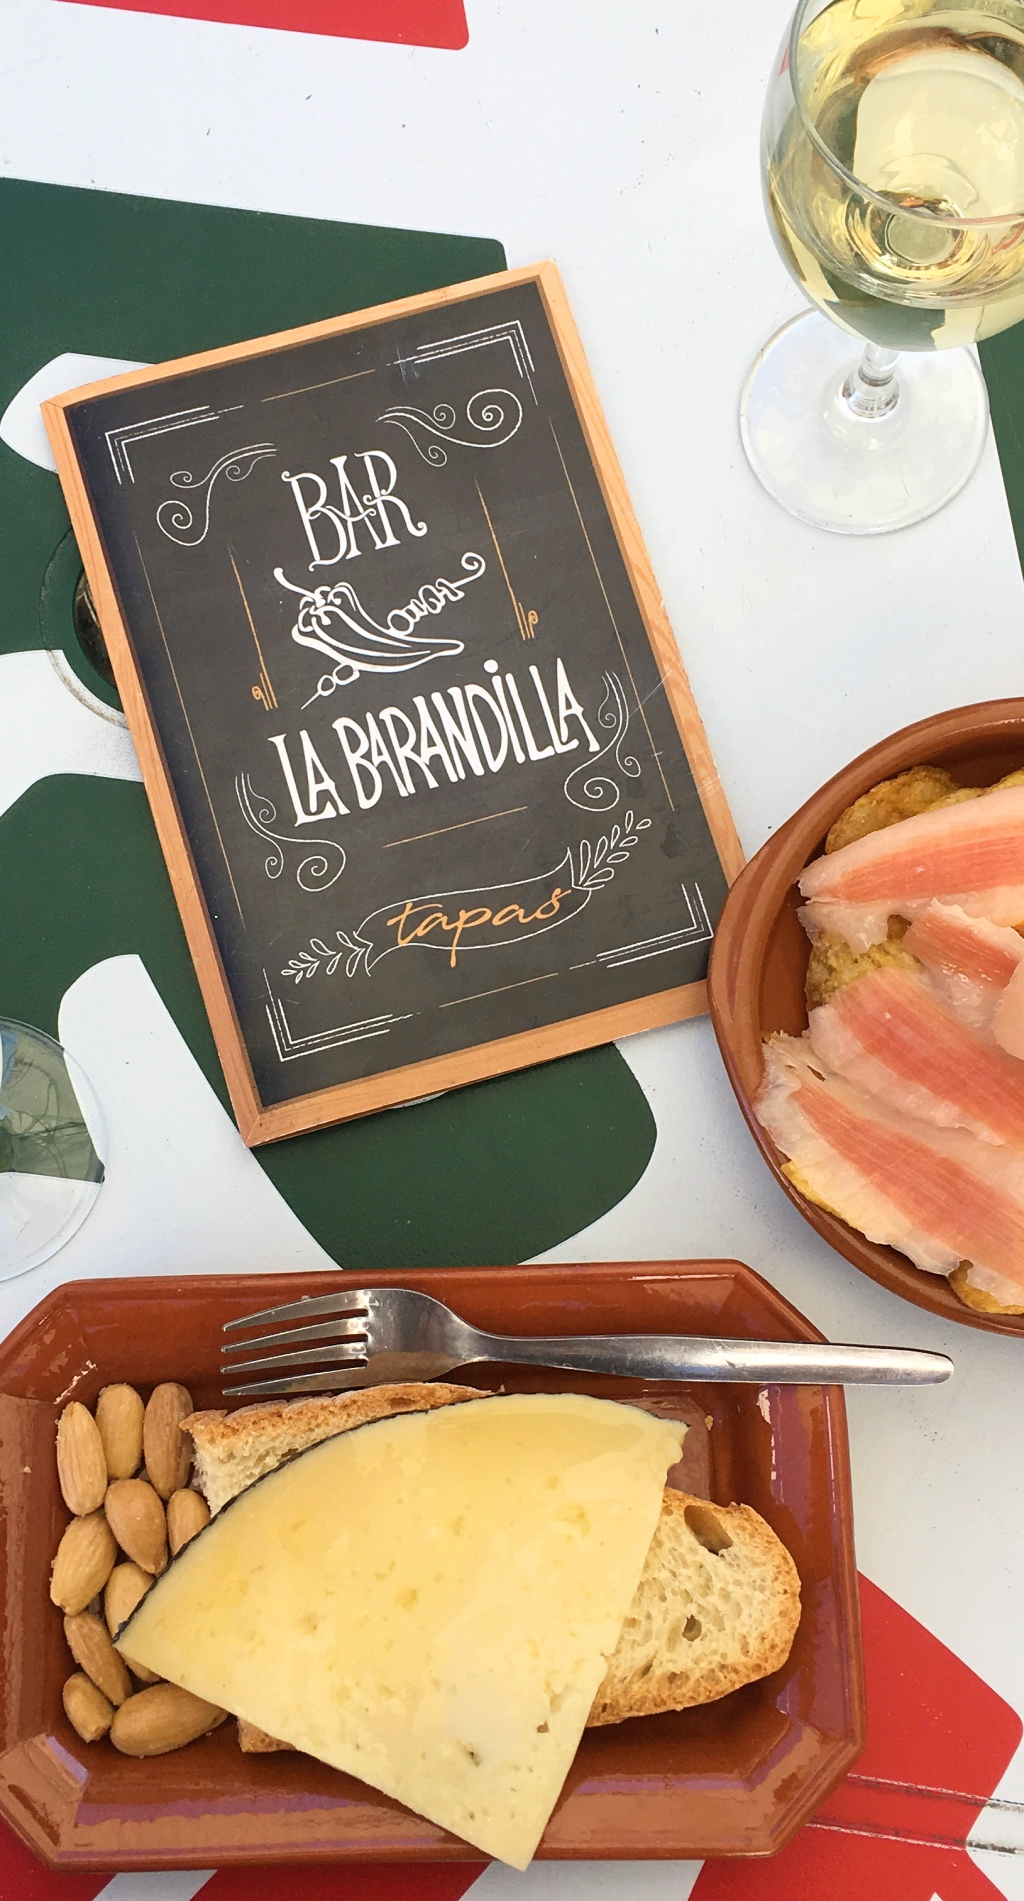 Tapas at Bar La Barandilla